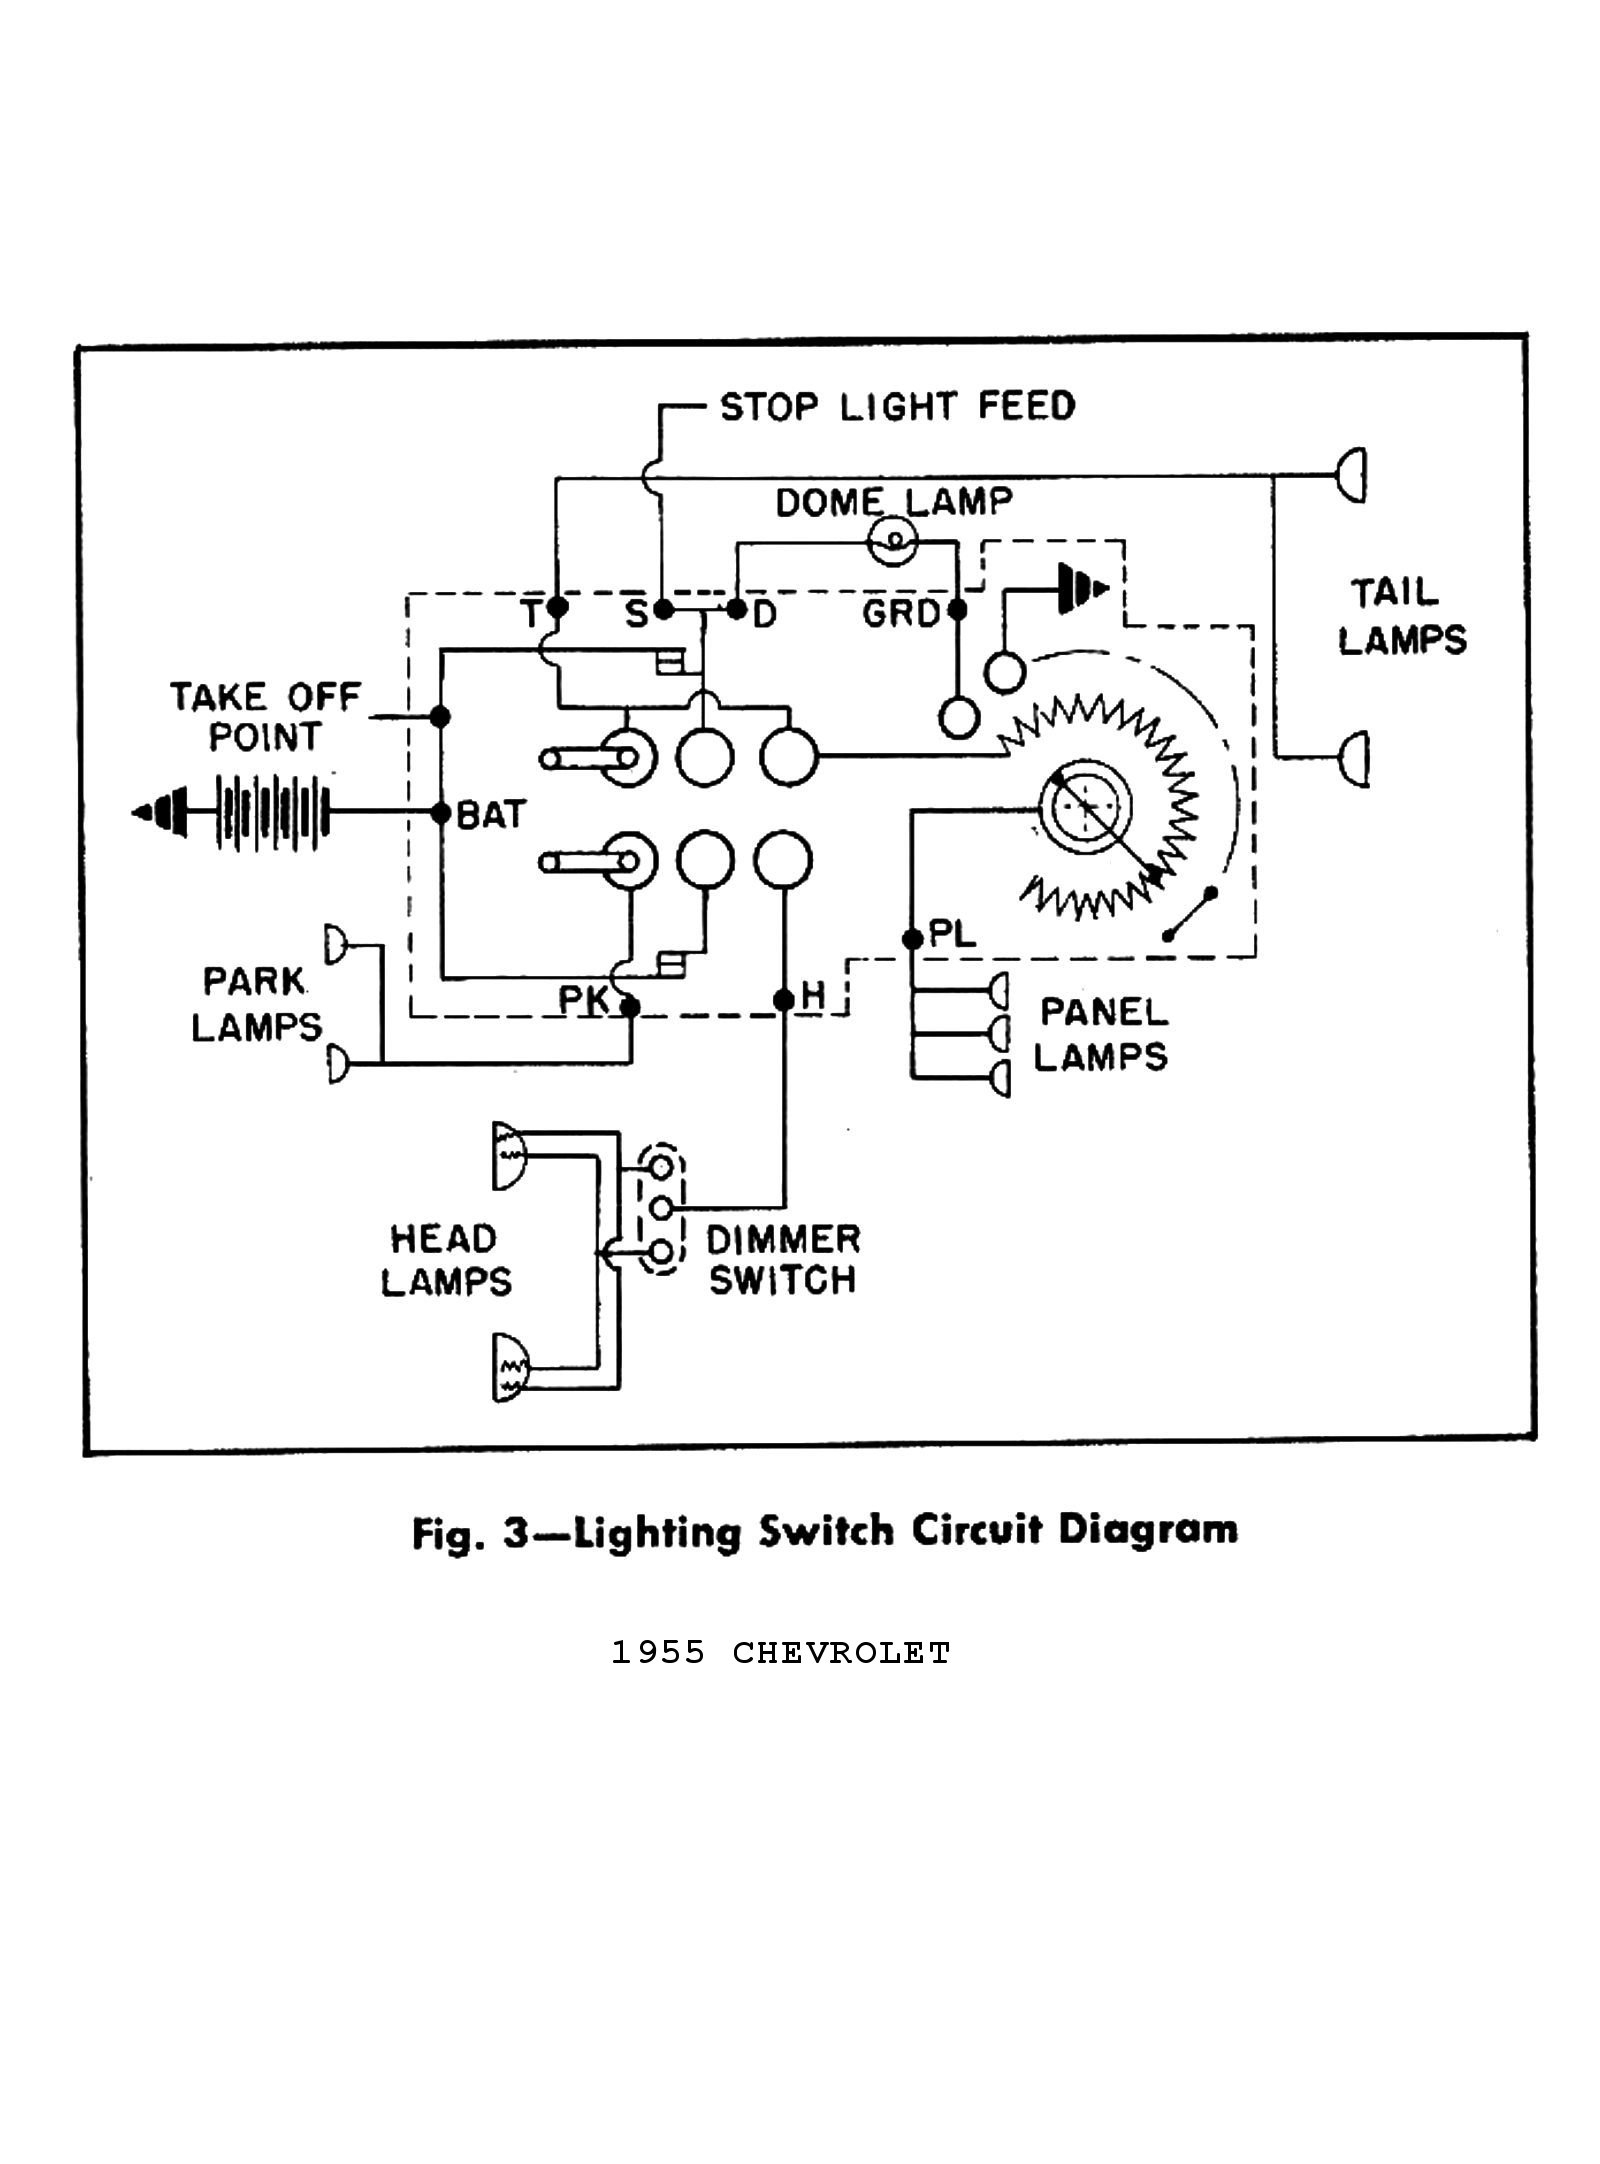 1947 Chevy Headlight Switch Wiring Diagram | Manual E-Books - Chevy Headlight Switch Wiring Diagram